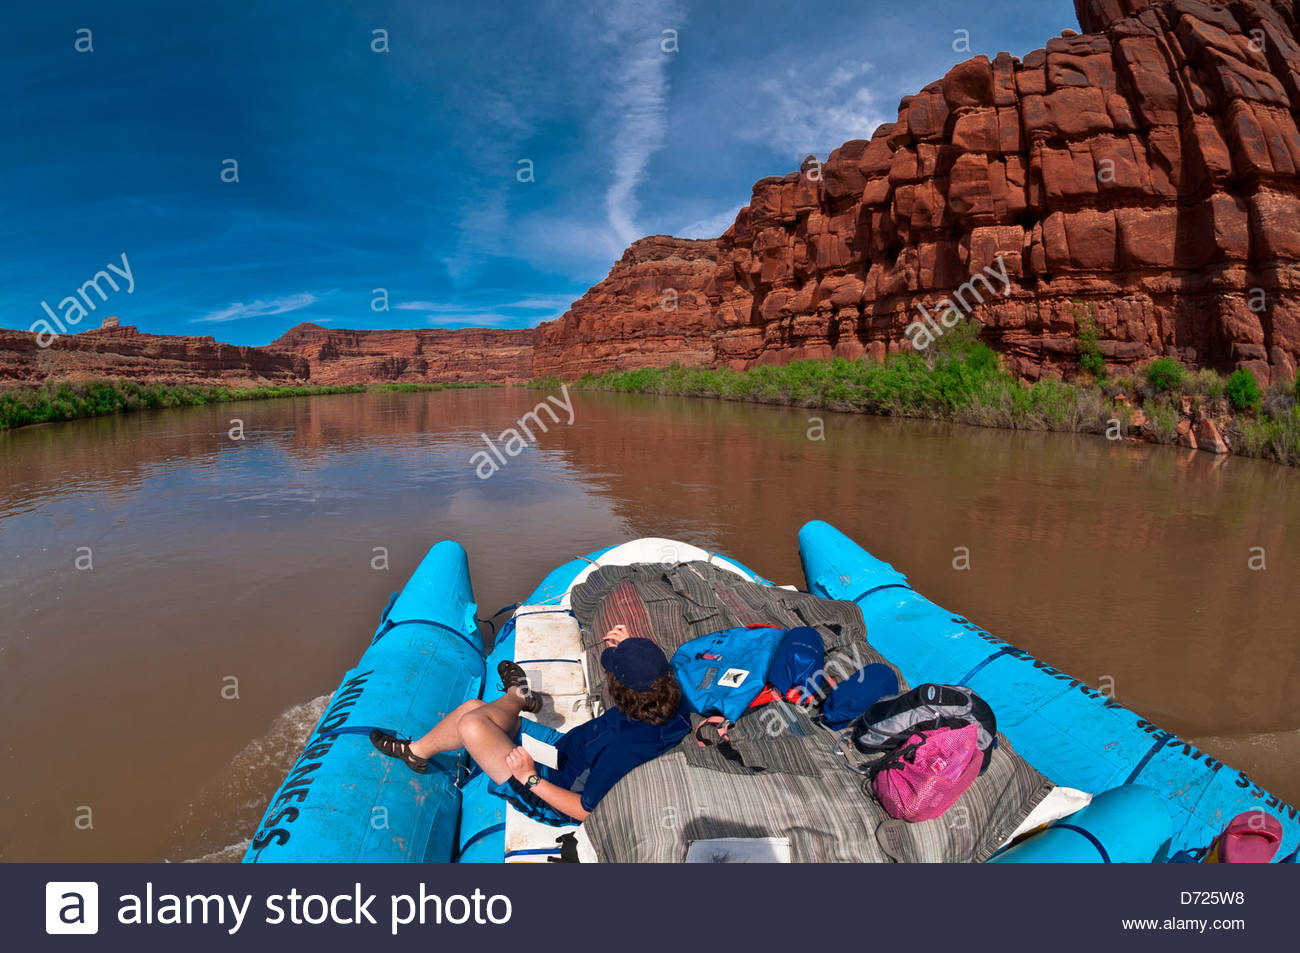 A Wilderness River Adventures motorized pontoon rafting down the Meander Canyon section of the Colorado River, Utah, - Stock Image